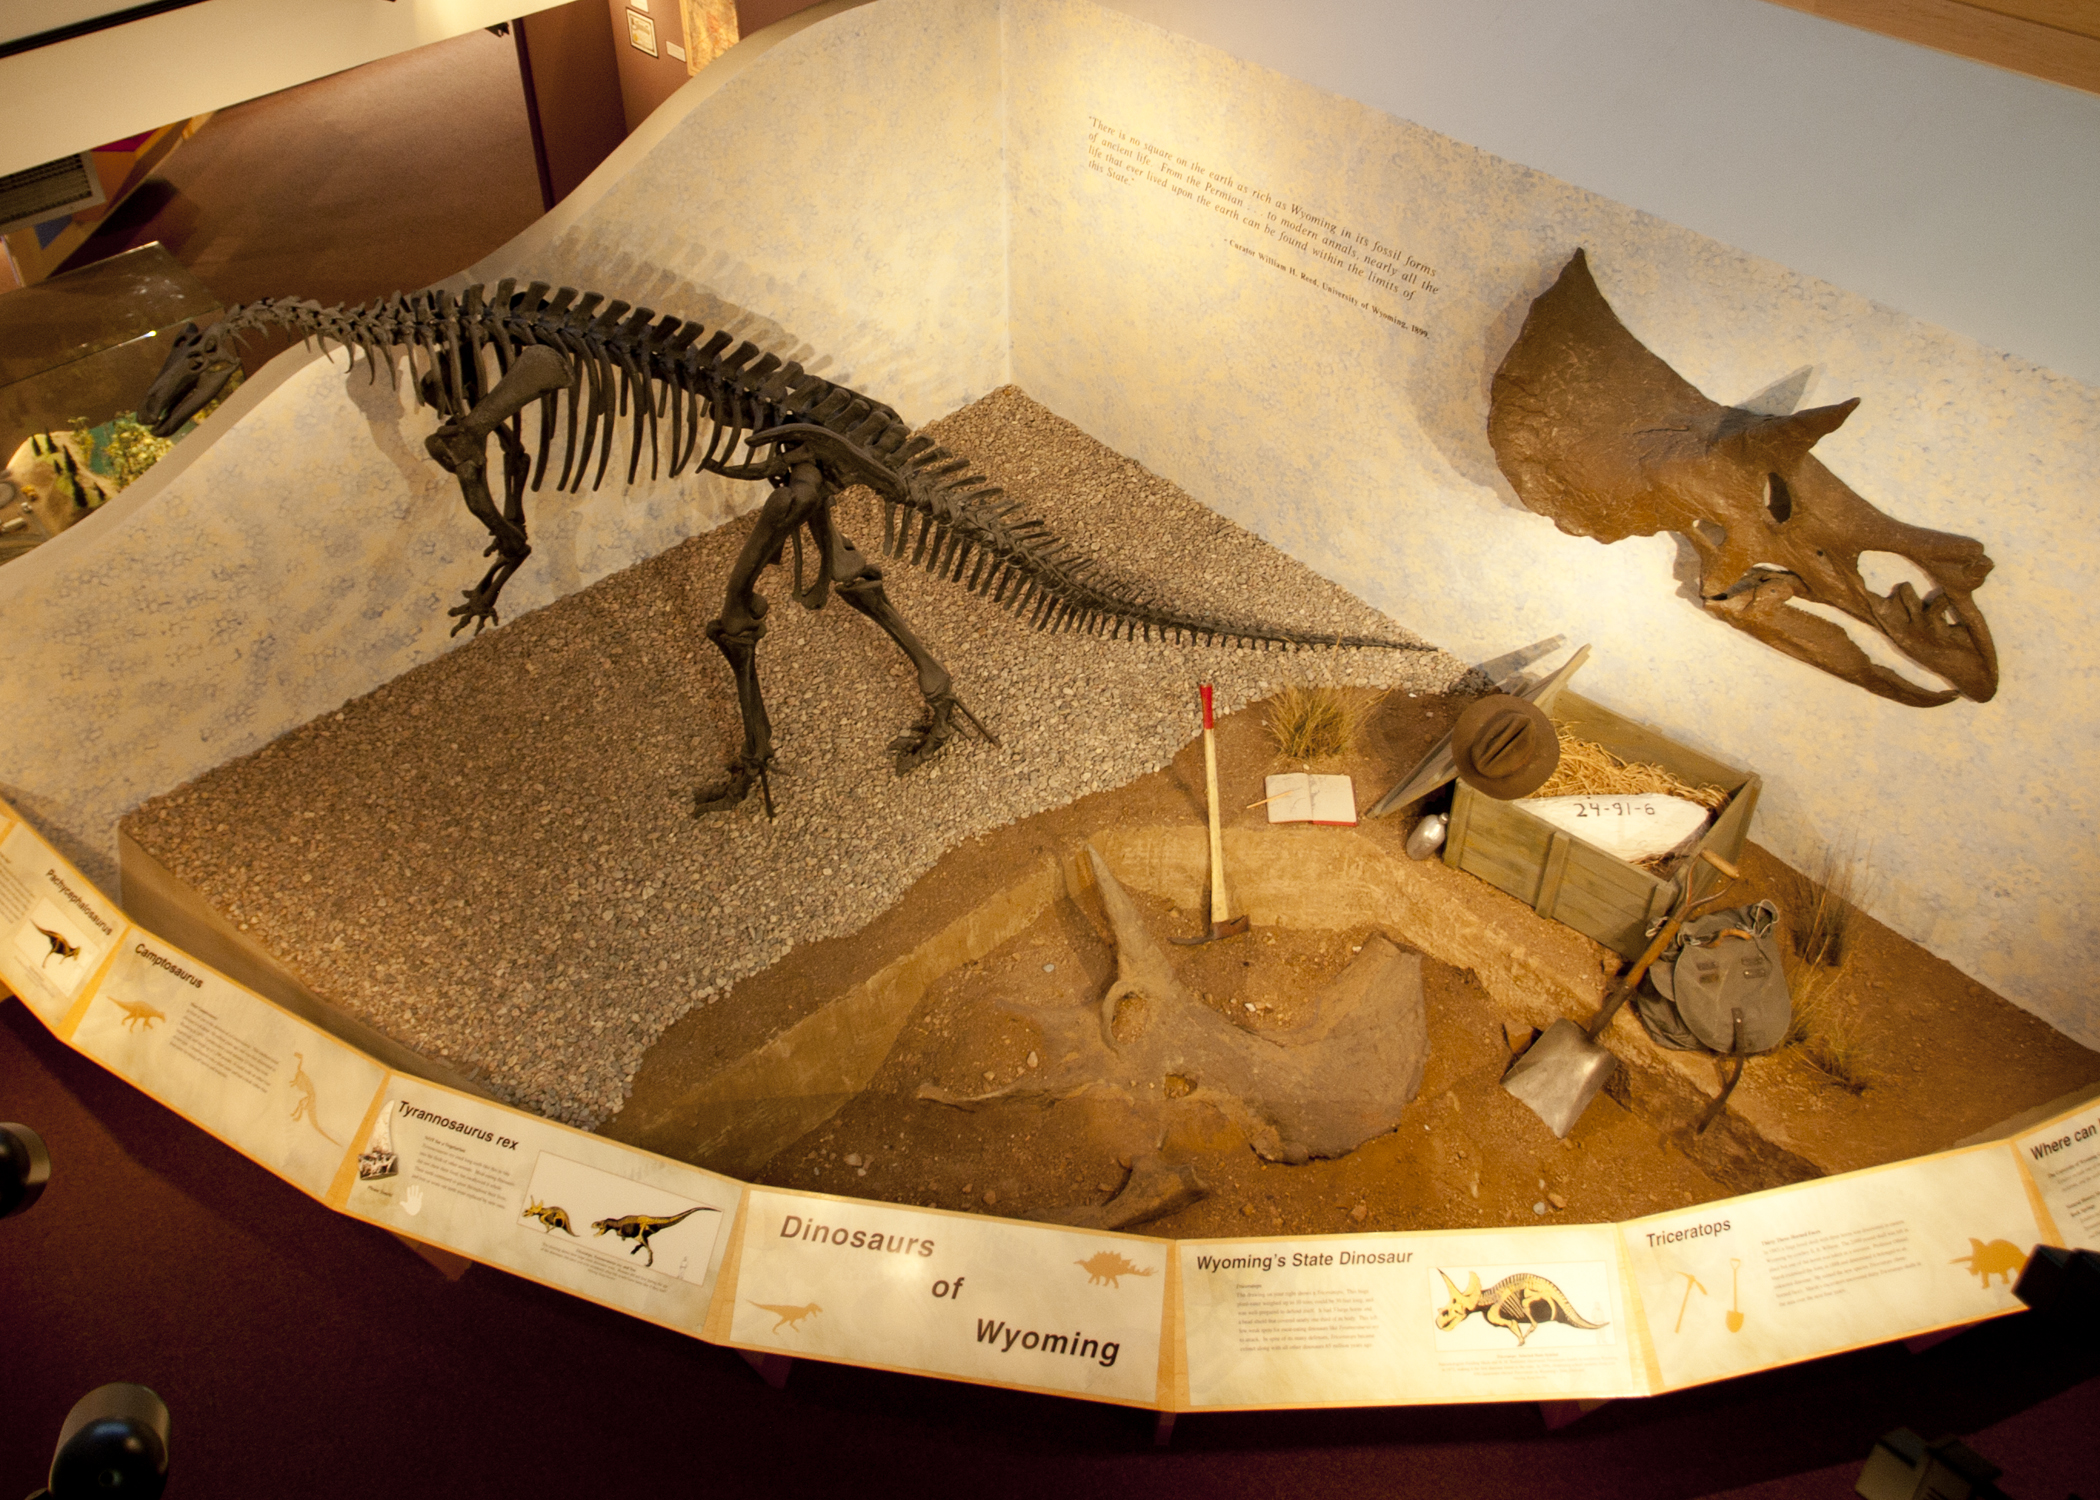 One of the dinosaur exhibits on display at the museum